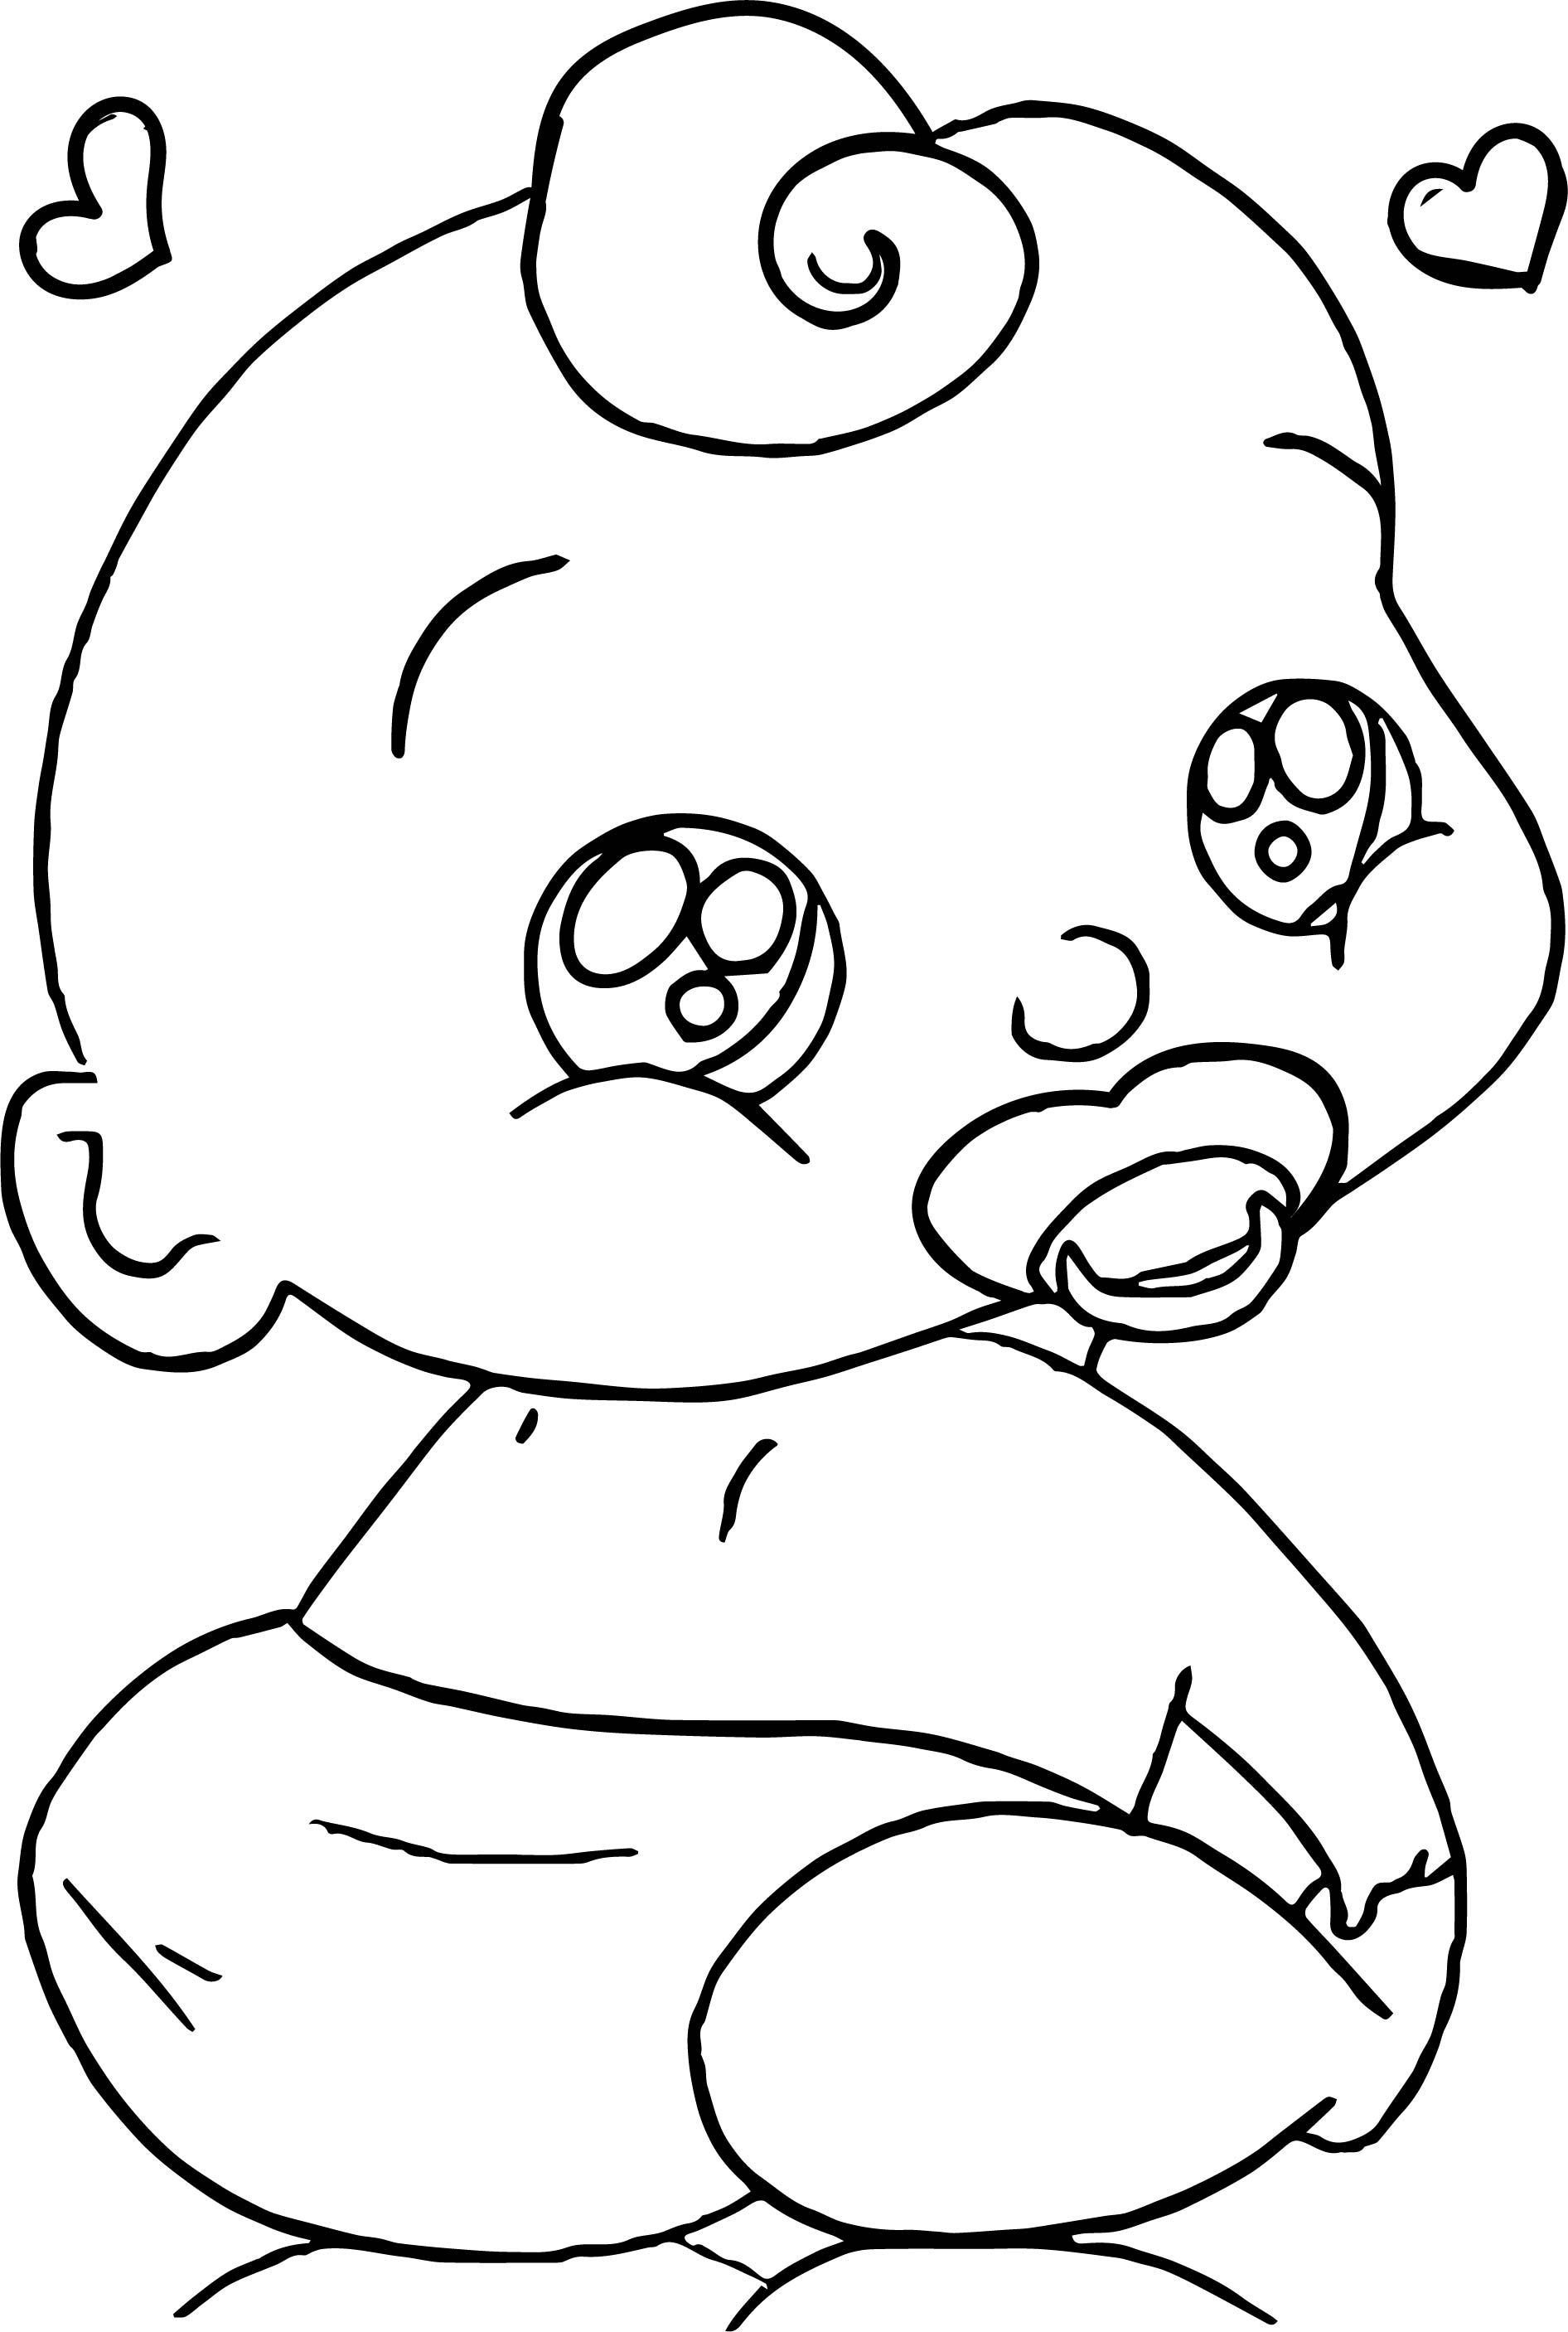 Awesome Baby Boy Cartoon Faces Coloring Page Wecoloringpage